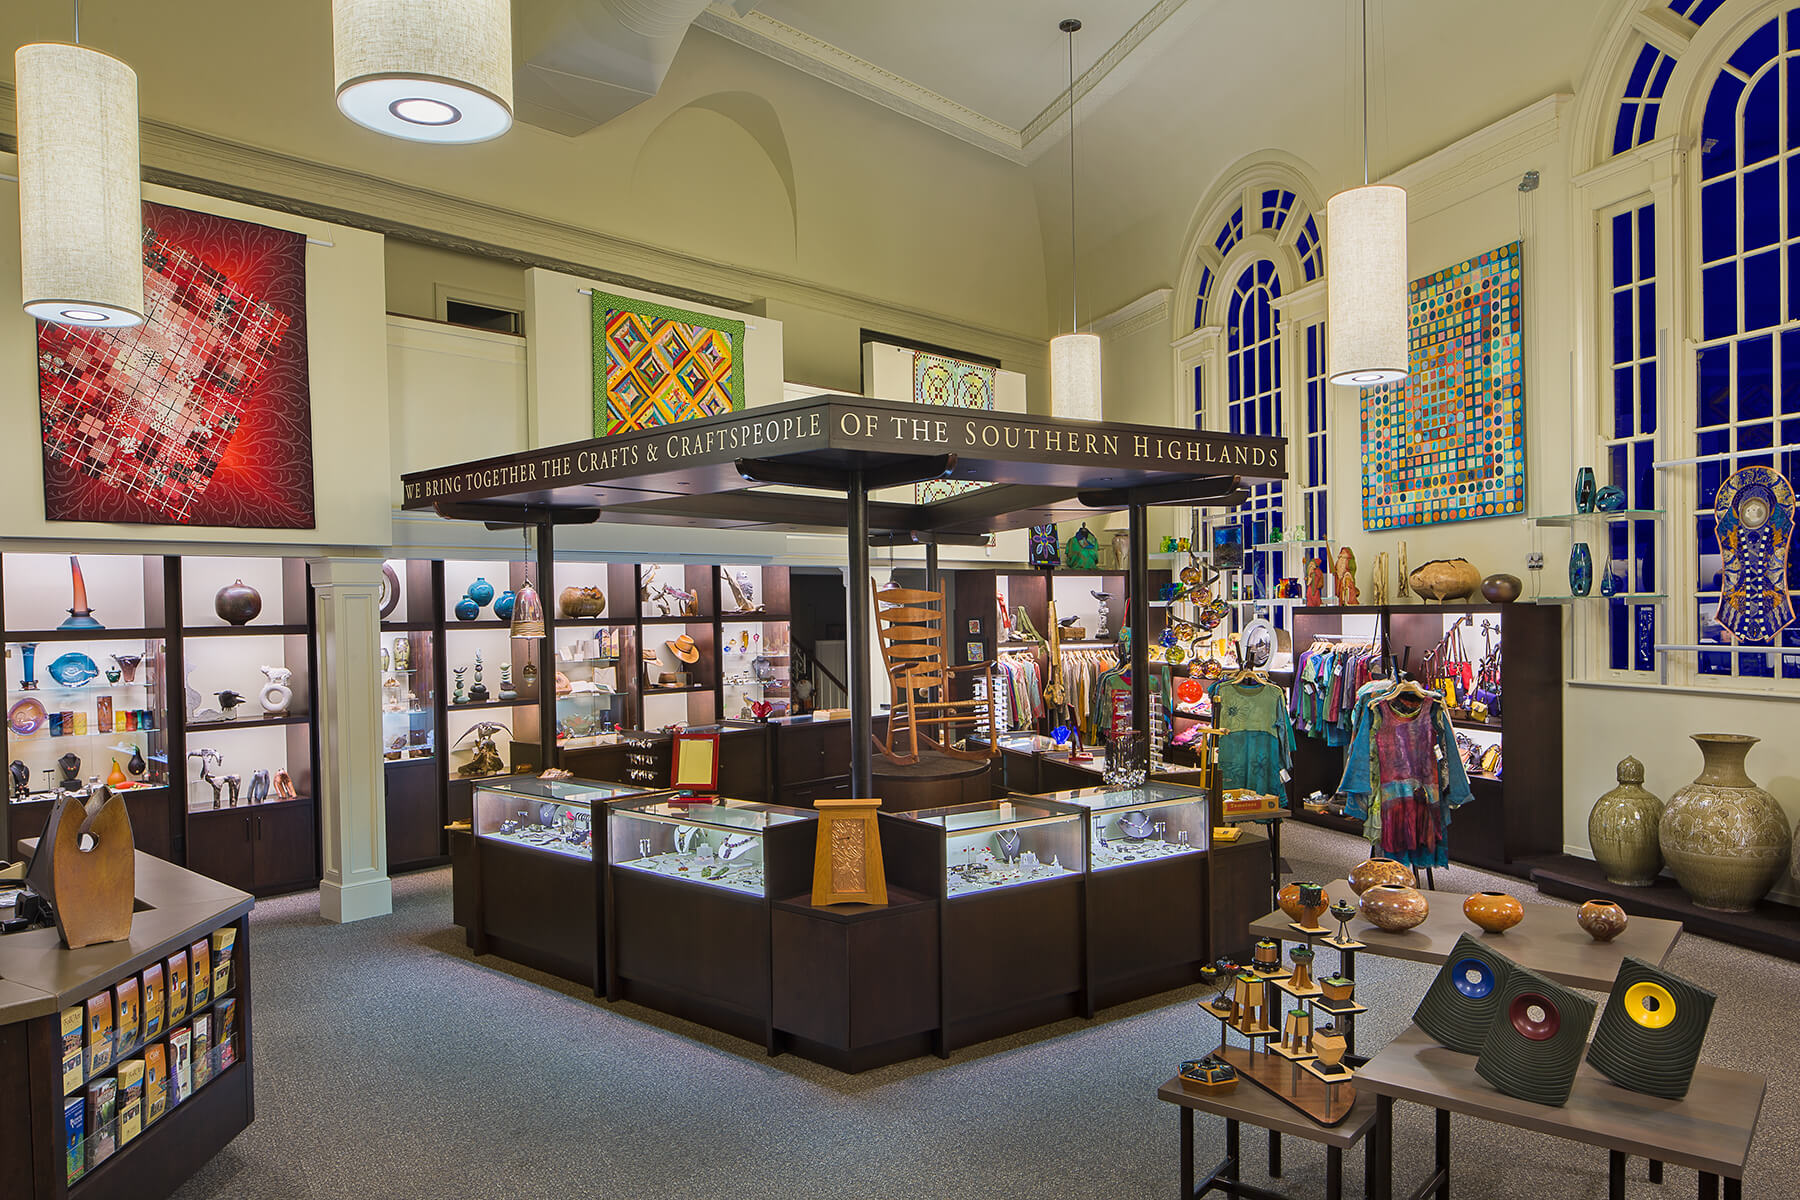 Southern Highland Craft Guild, an architectural renovation project in Biltmore Village